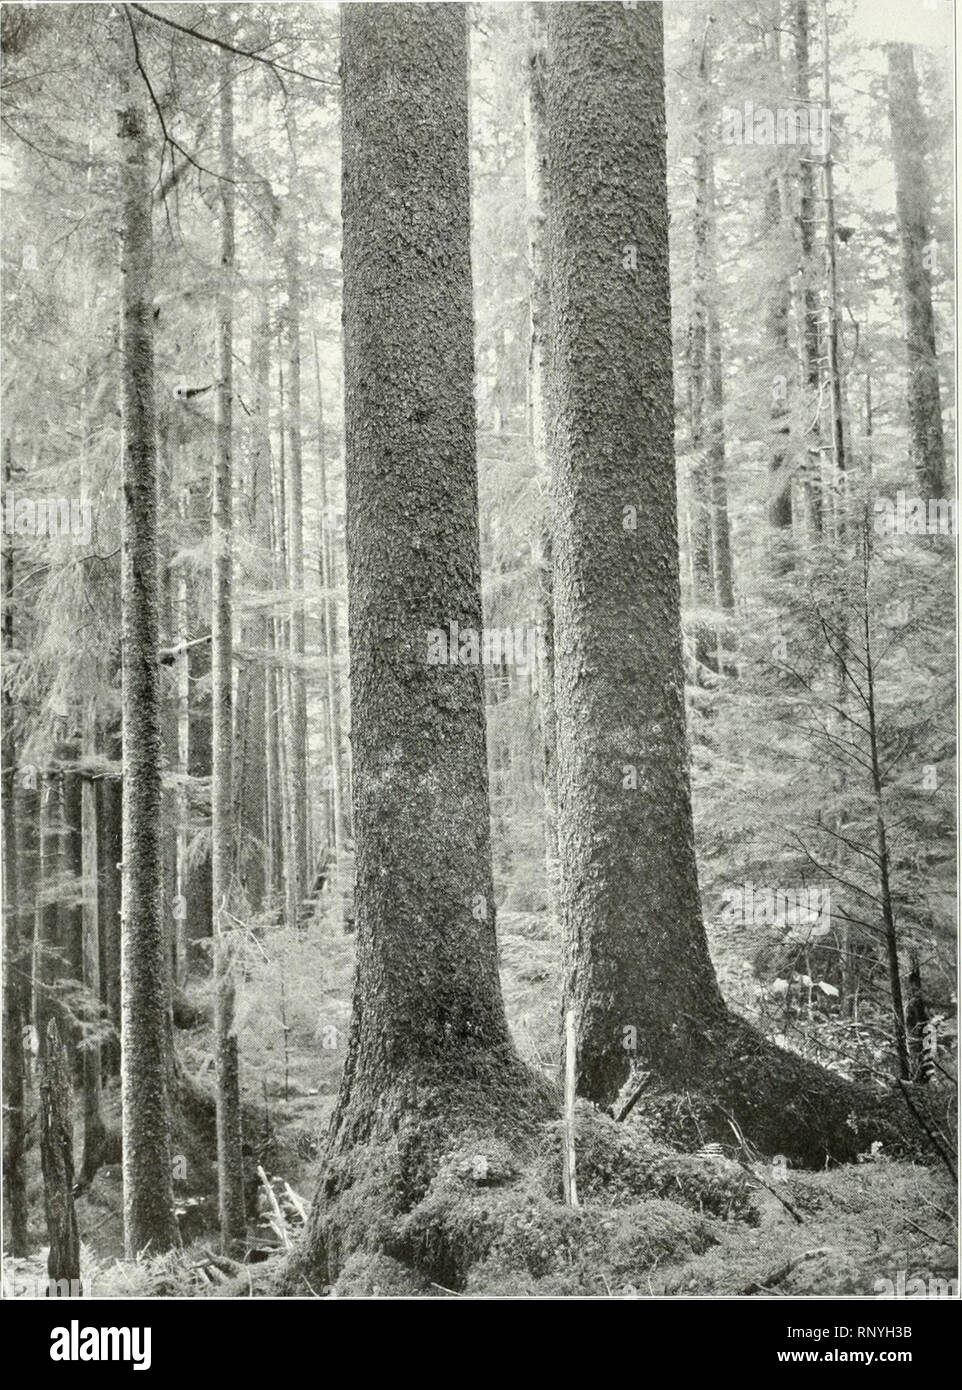 . American forestry. Forests and forestry. 26 AMERICAN FORESTRY. SITKA SPRUCE IN THE TONGASS NATIONAL FORI':ST The most important species in Alasl<a is tlie Sitka spruce. Single trees reach a diameter of over seven feet and a height of 200 feet. A single log lirought to one of the local mills was 154 feet long and scaled 18,000 hoard feet. Many parts of the forest run from lifty to seventy-live thousand feet per acre, limited areas carry one hundred thousand feet per acre. feet in diameter. But this comparison indicates an extraordinary development of the Washington forests rather than a sm Stock Photo